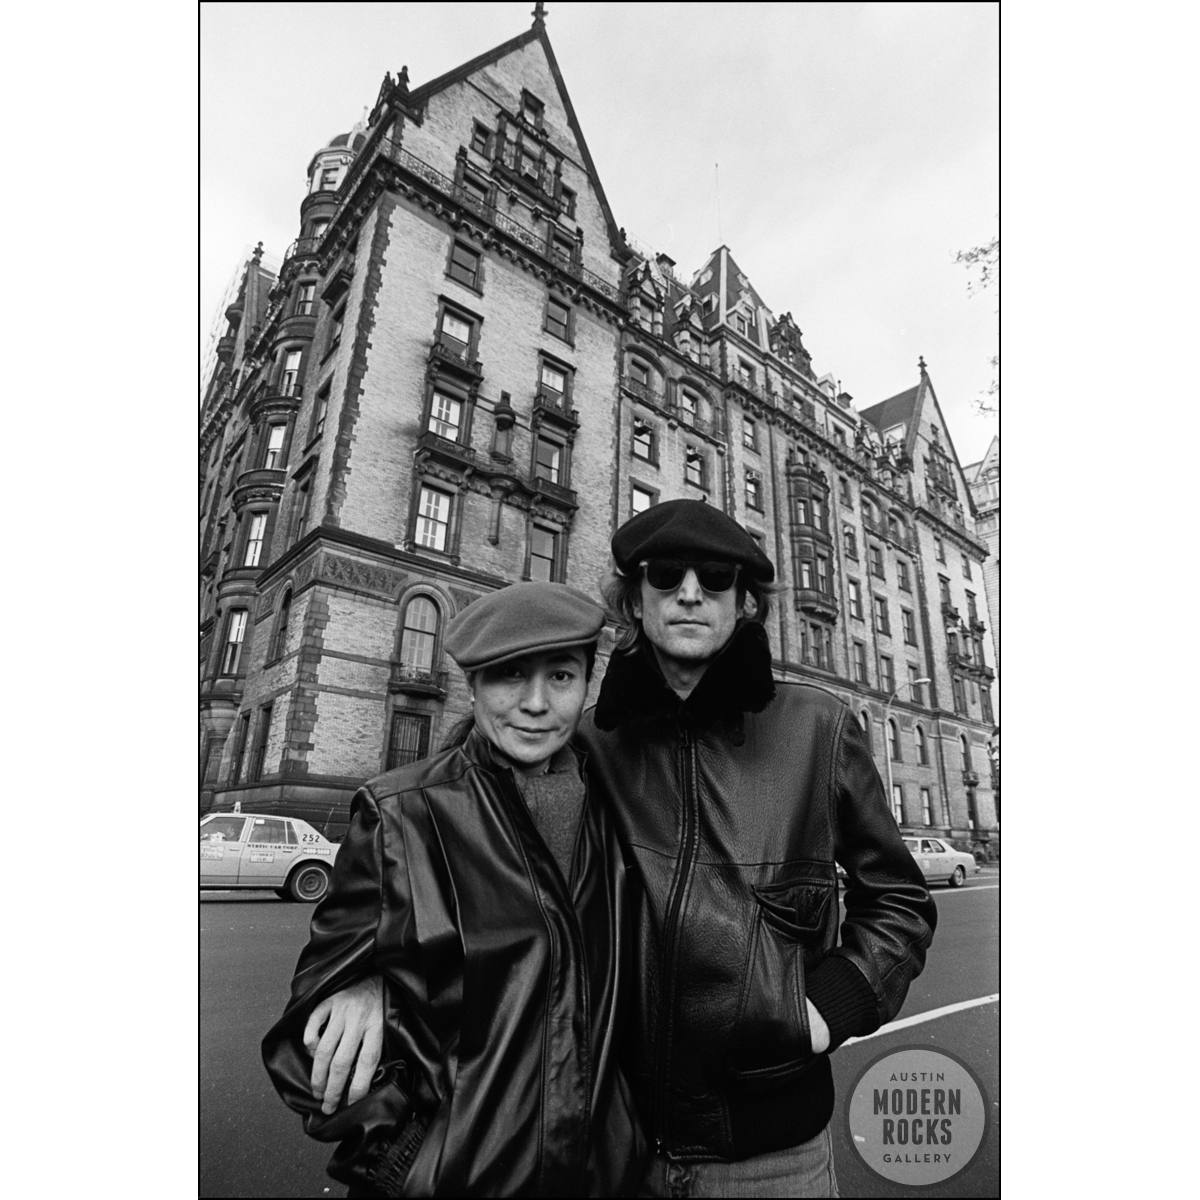 John Lennon And Yoko Ono Dakota By Allan Tannenbaum Buy Signed Limited Edition Prints